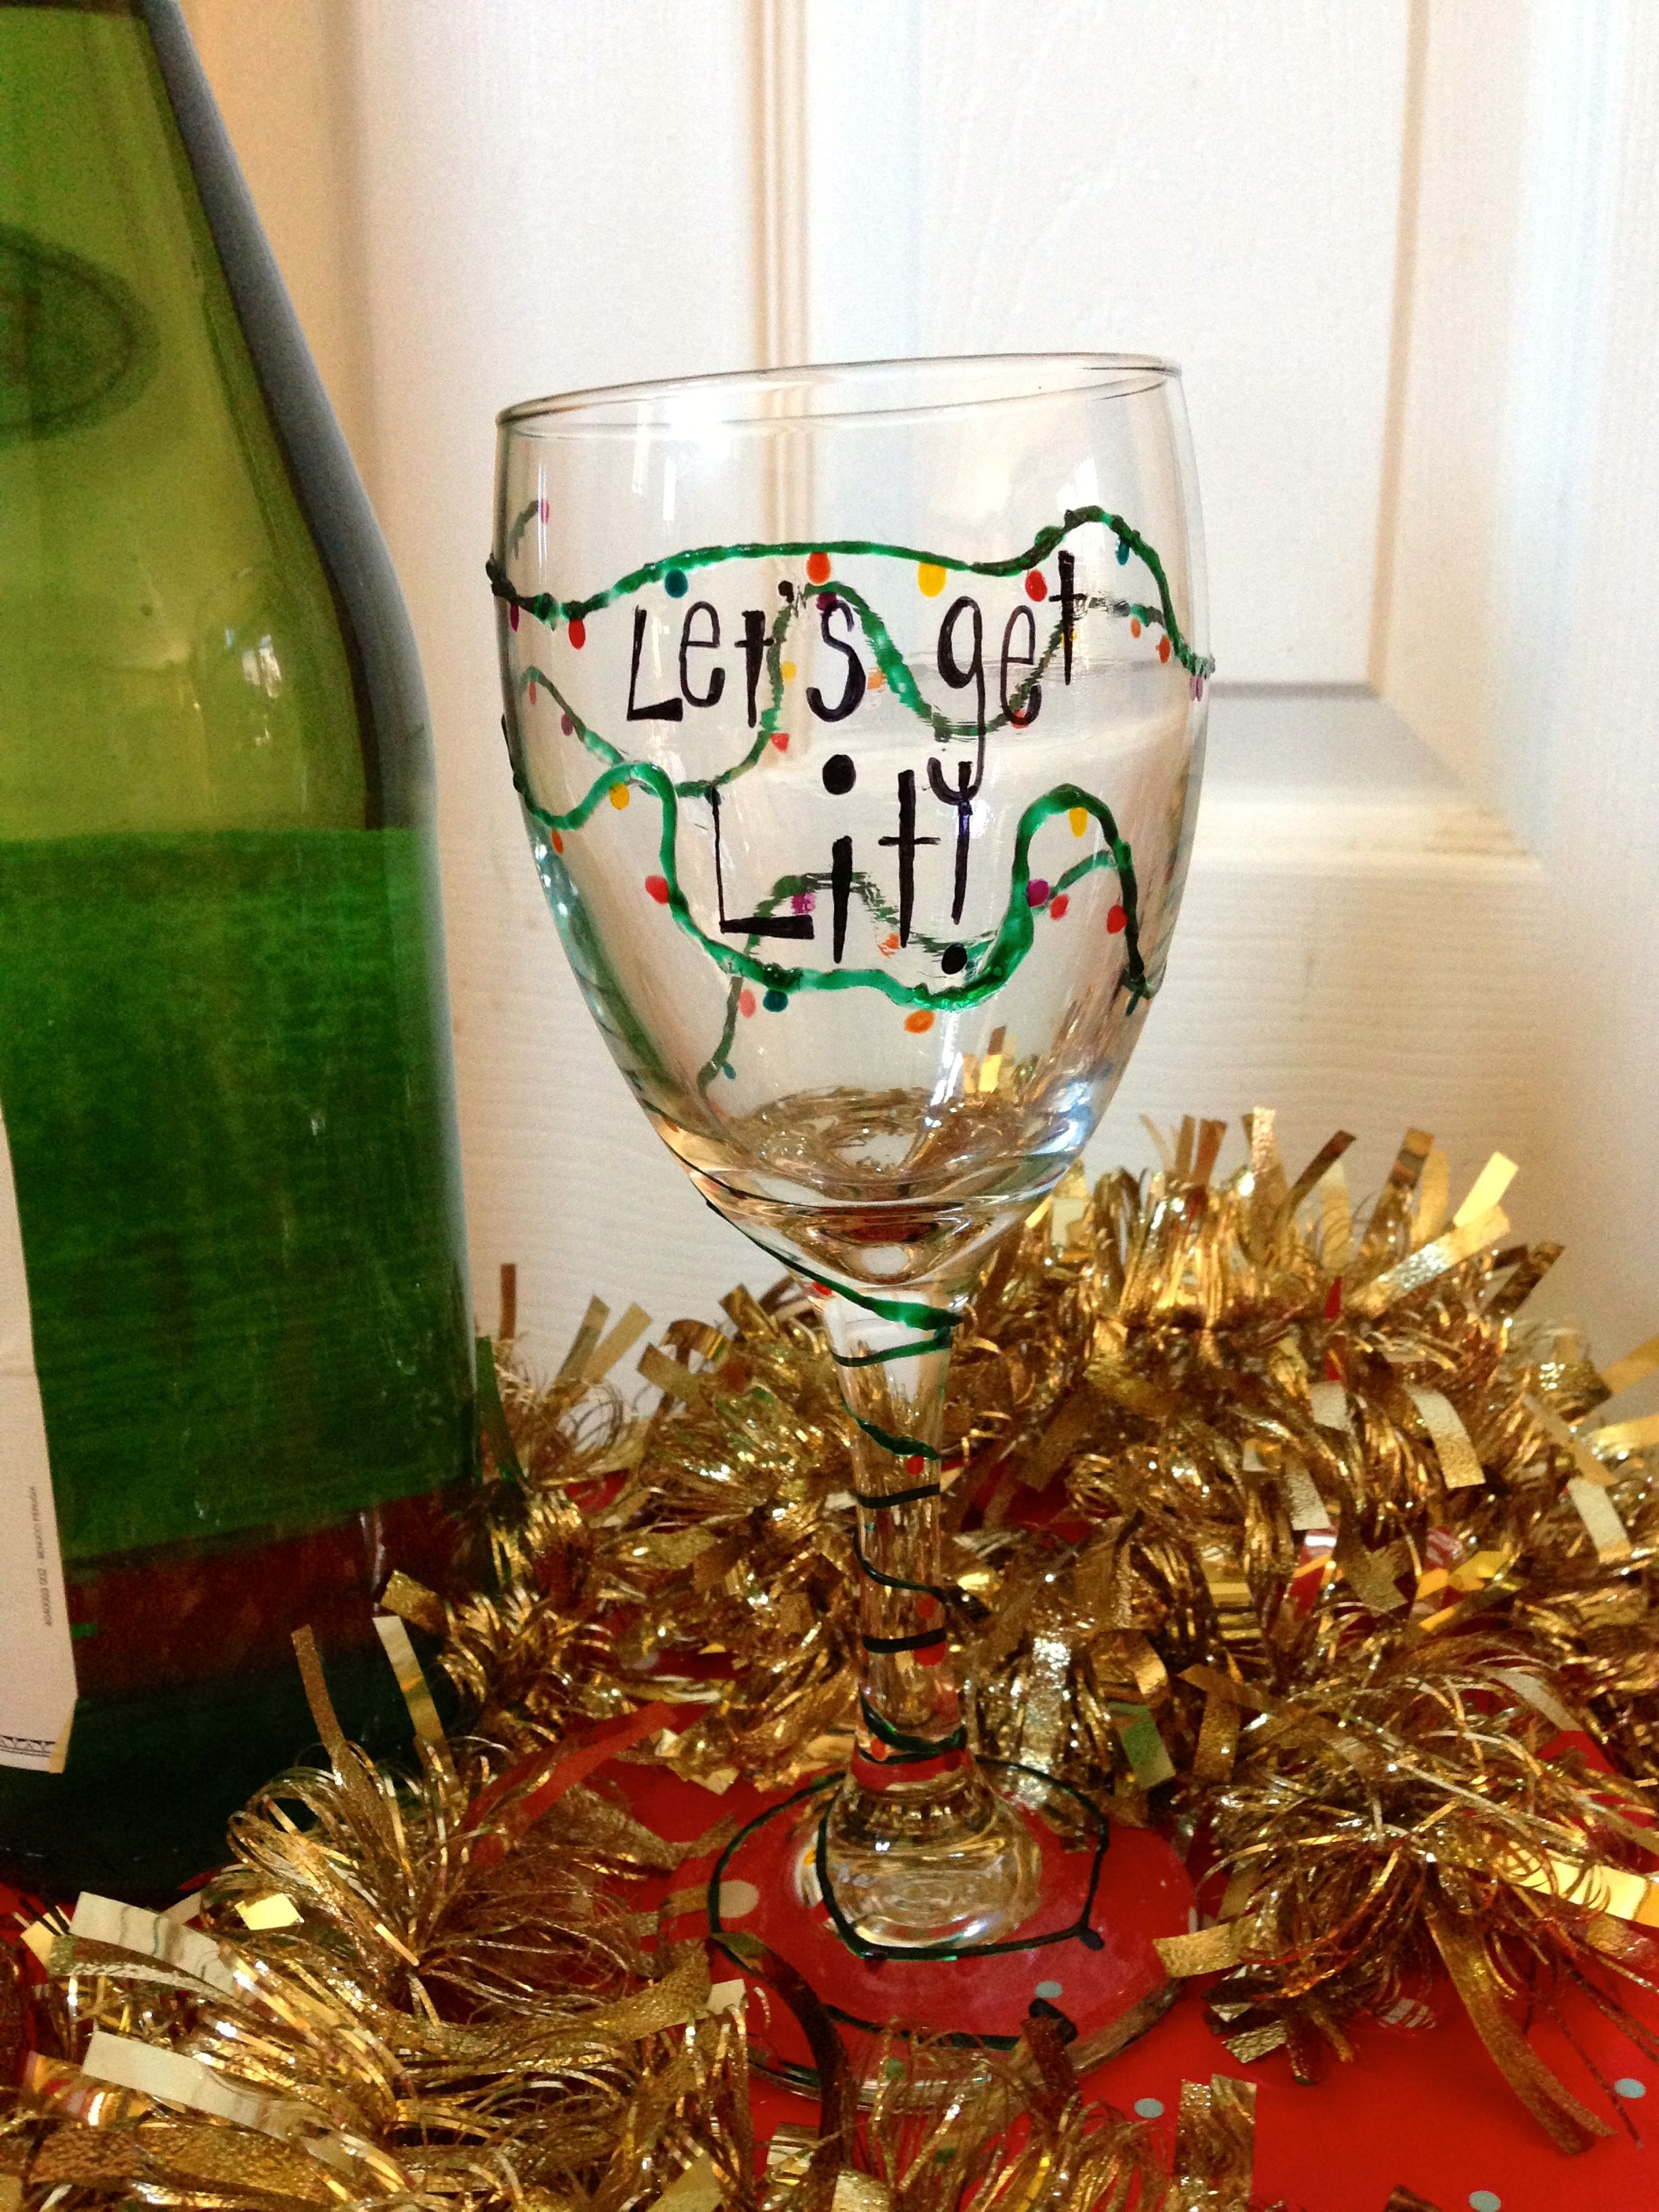 Best Dishwasher For Wine Glasses Dishwasher Safe Funny Christmas Wine Glass Best Time Of Year To